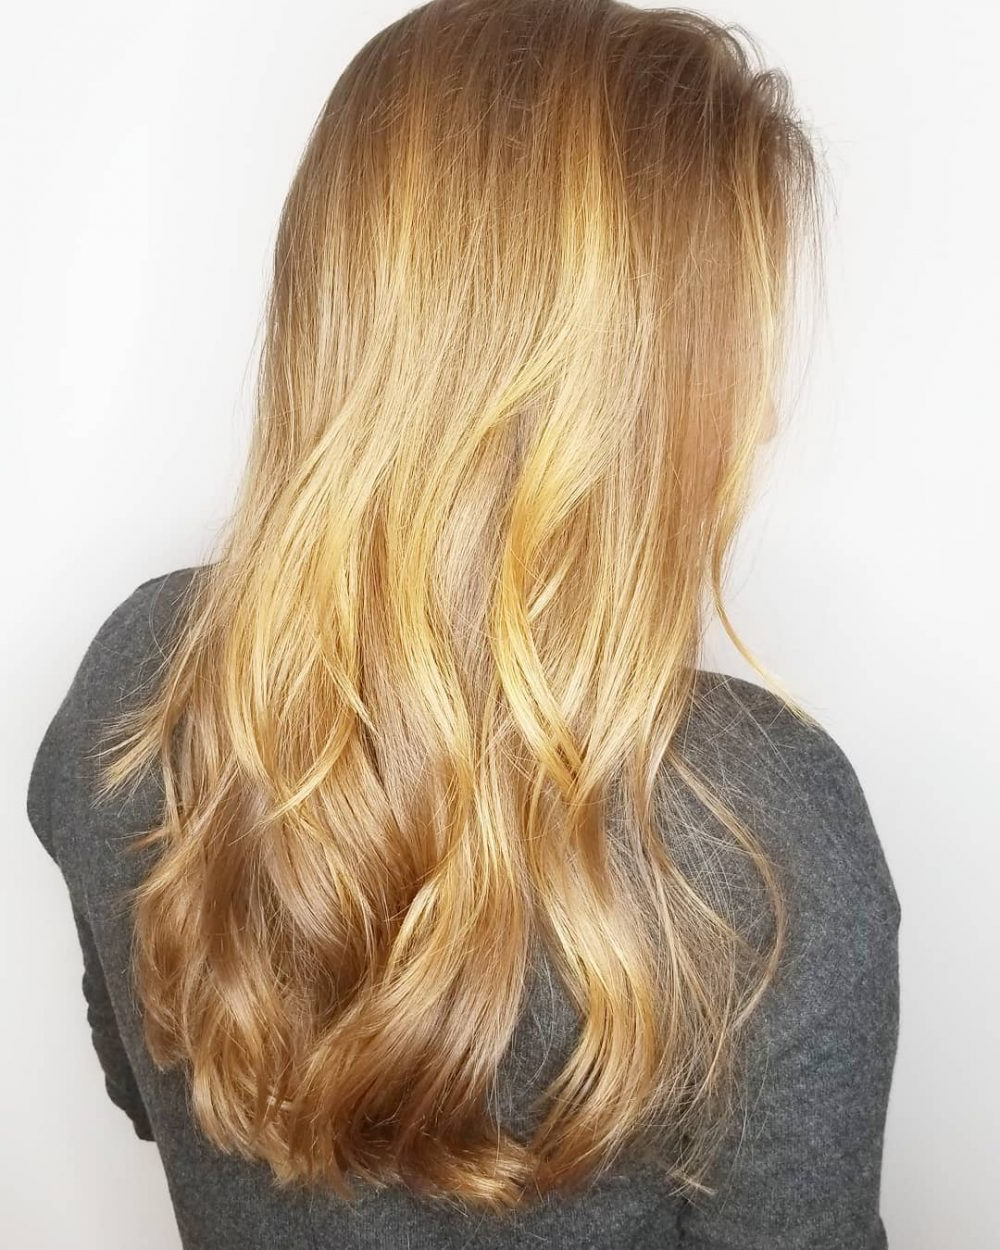 Current Shiny Caramel Layers Long Shag Haircuts Within 36 Perfect Hairstyles For Long Thin Hair (trending For 2019!) (View 16 of 20)